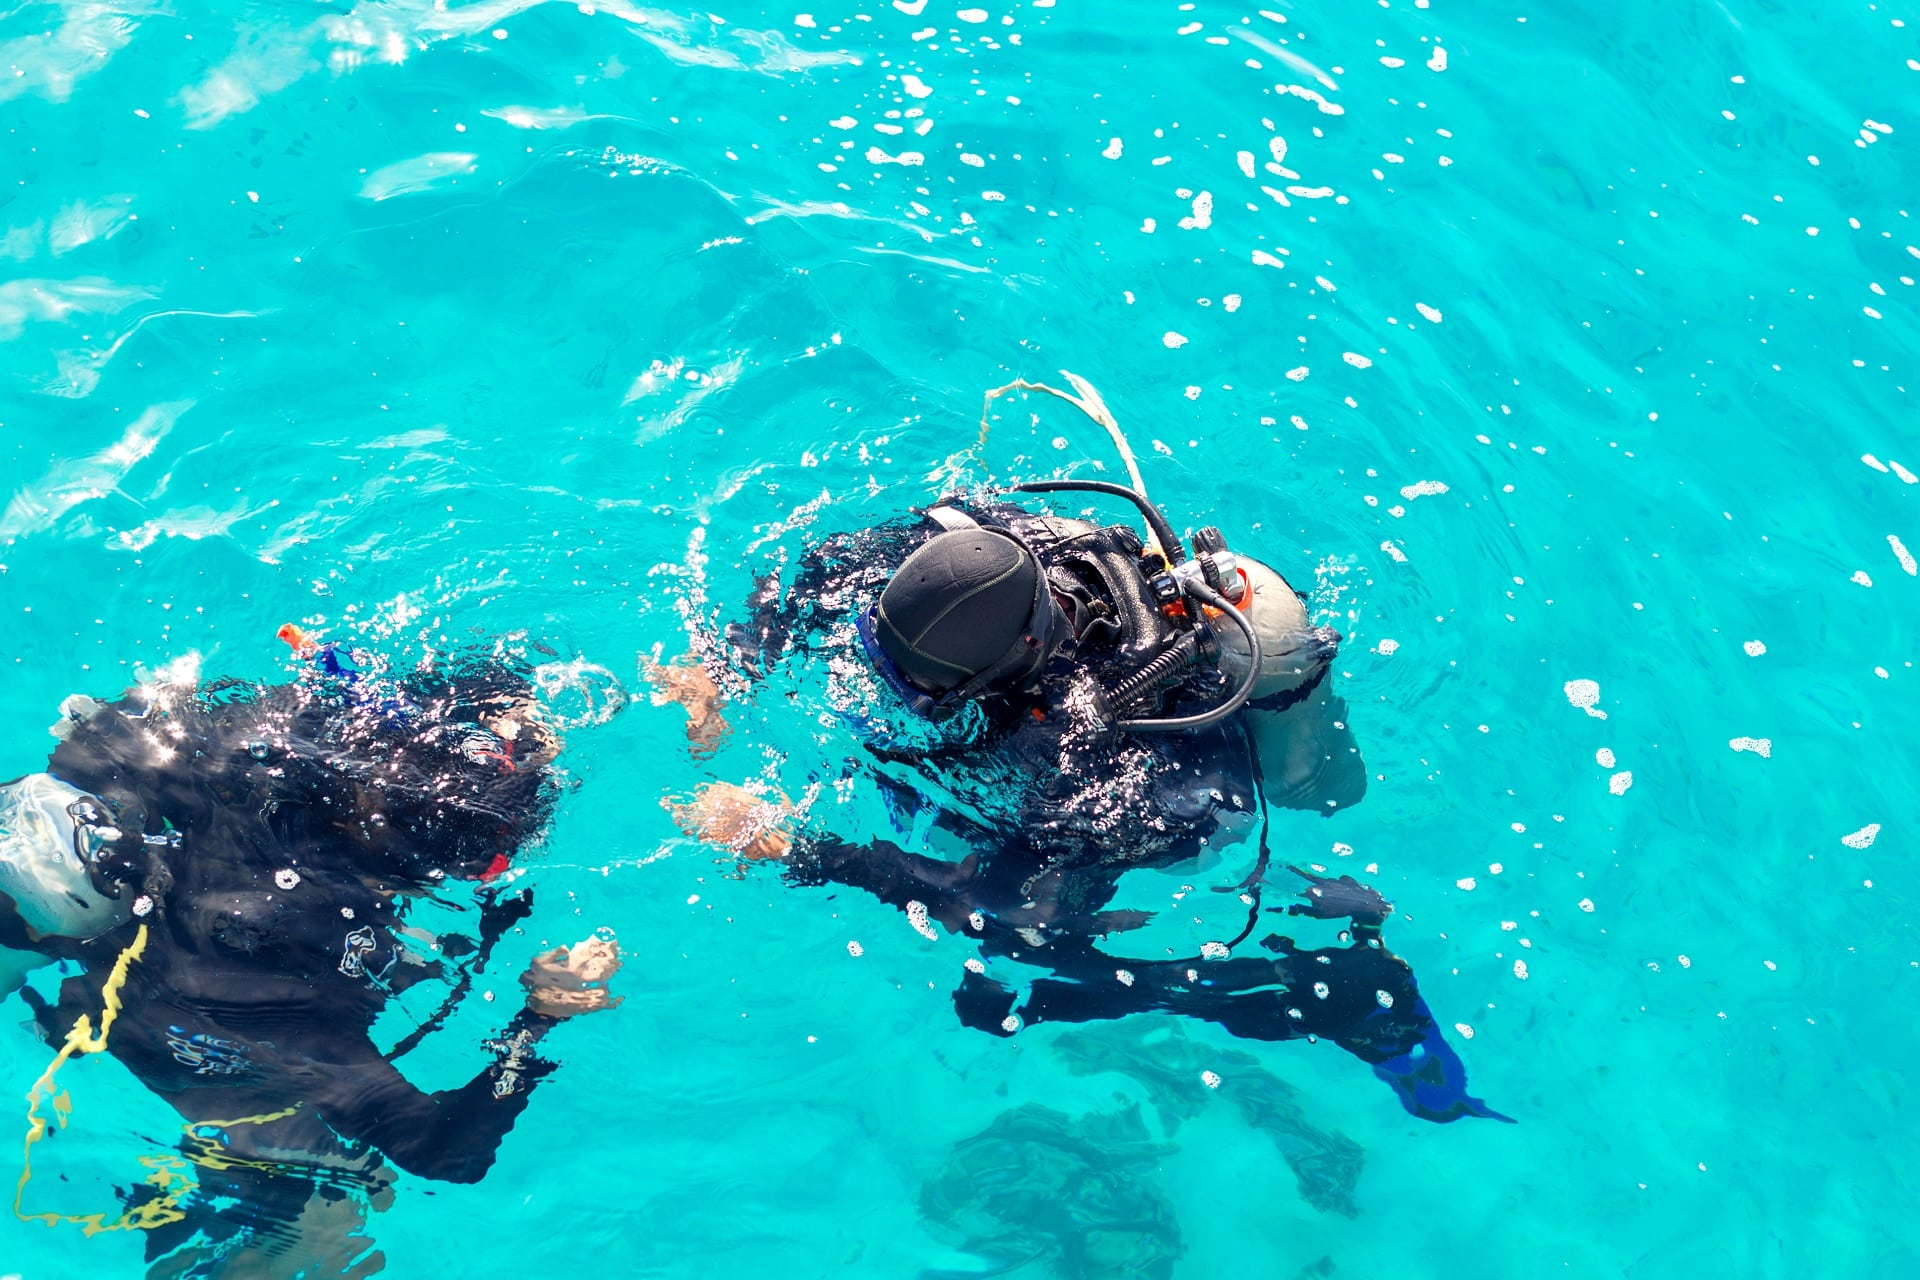 Tauchurlaub: Couple divers plunged into the ocean, top view